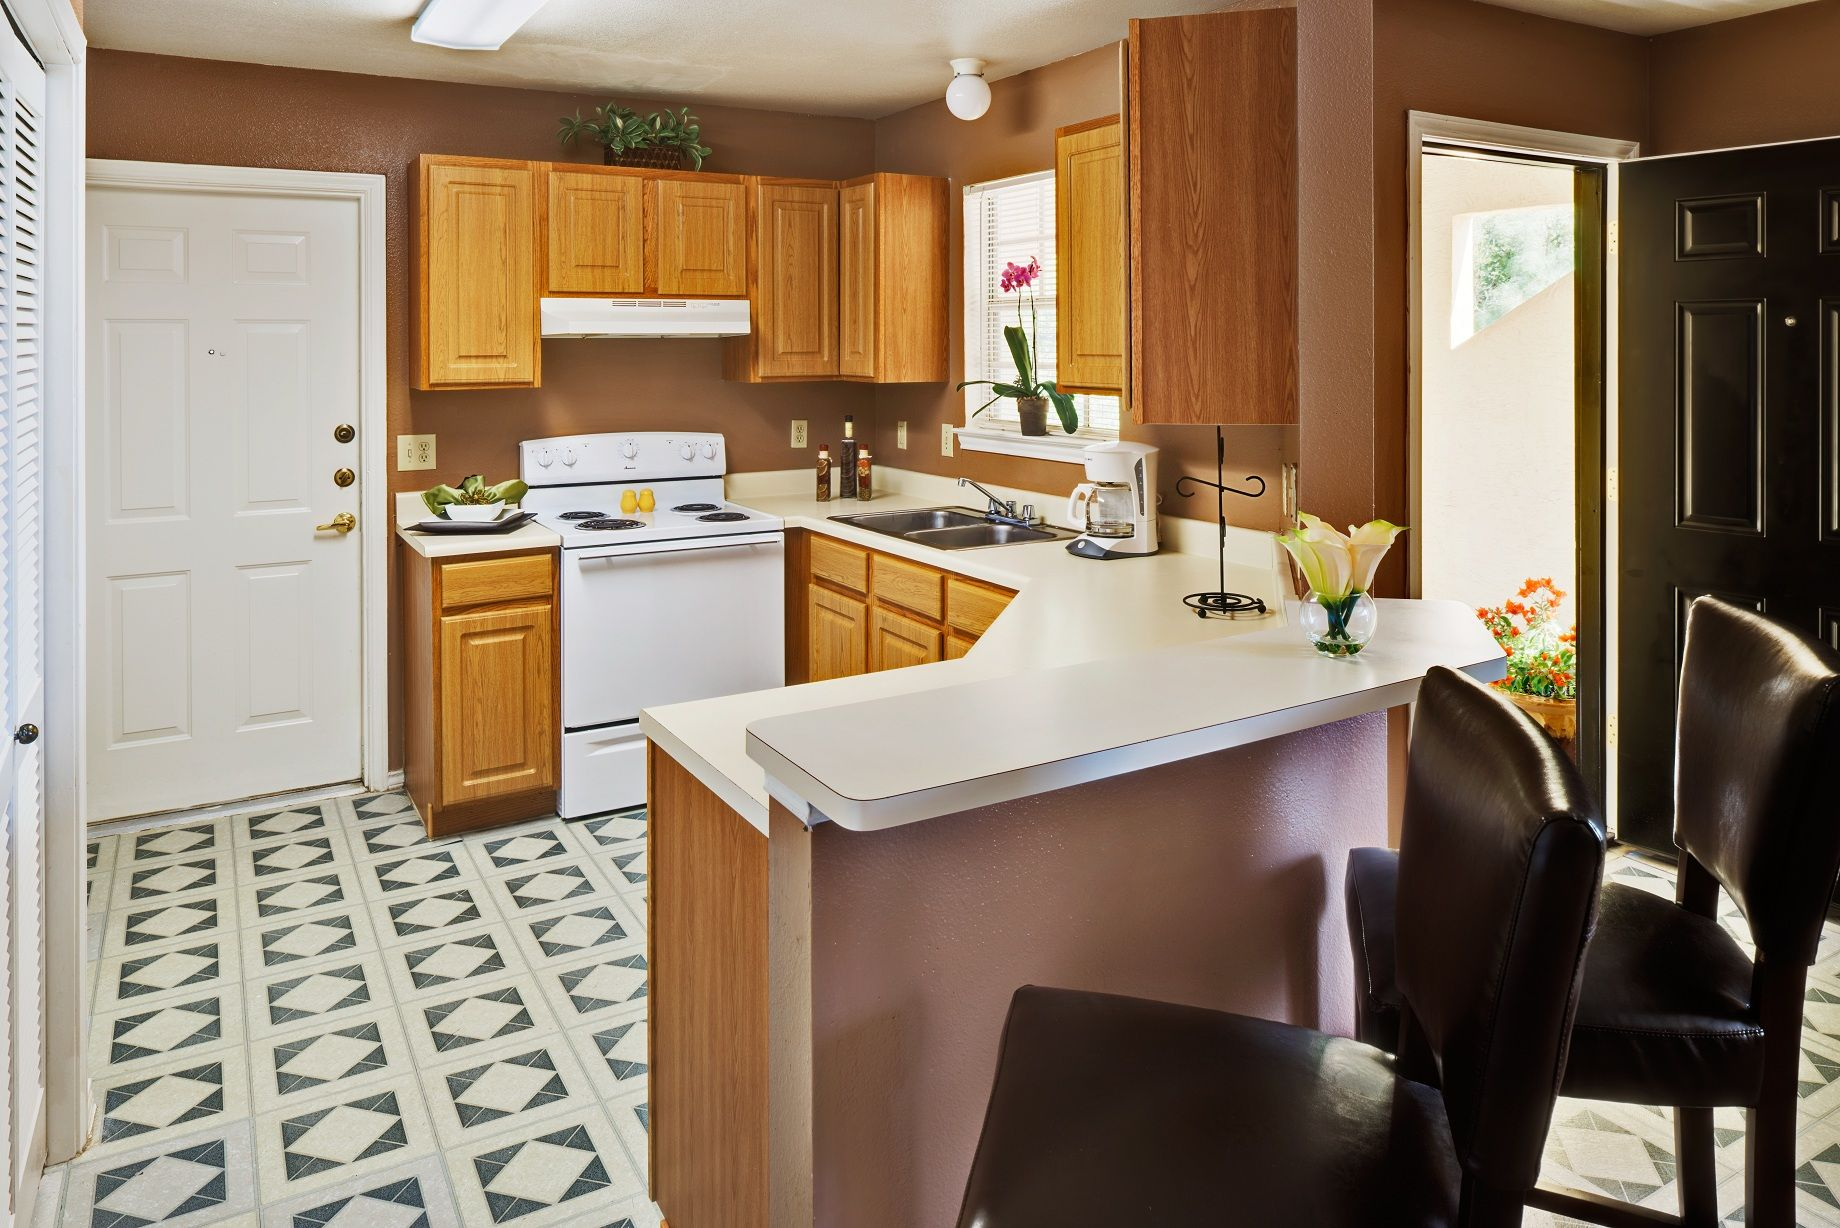 Monticello Manor  Affordable apartments in San Antonio  TX. Affordable Apartments San Antonio Tx. Home Design Ideas